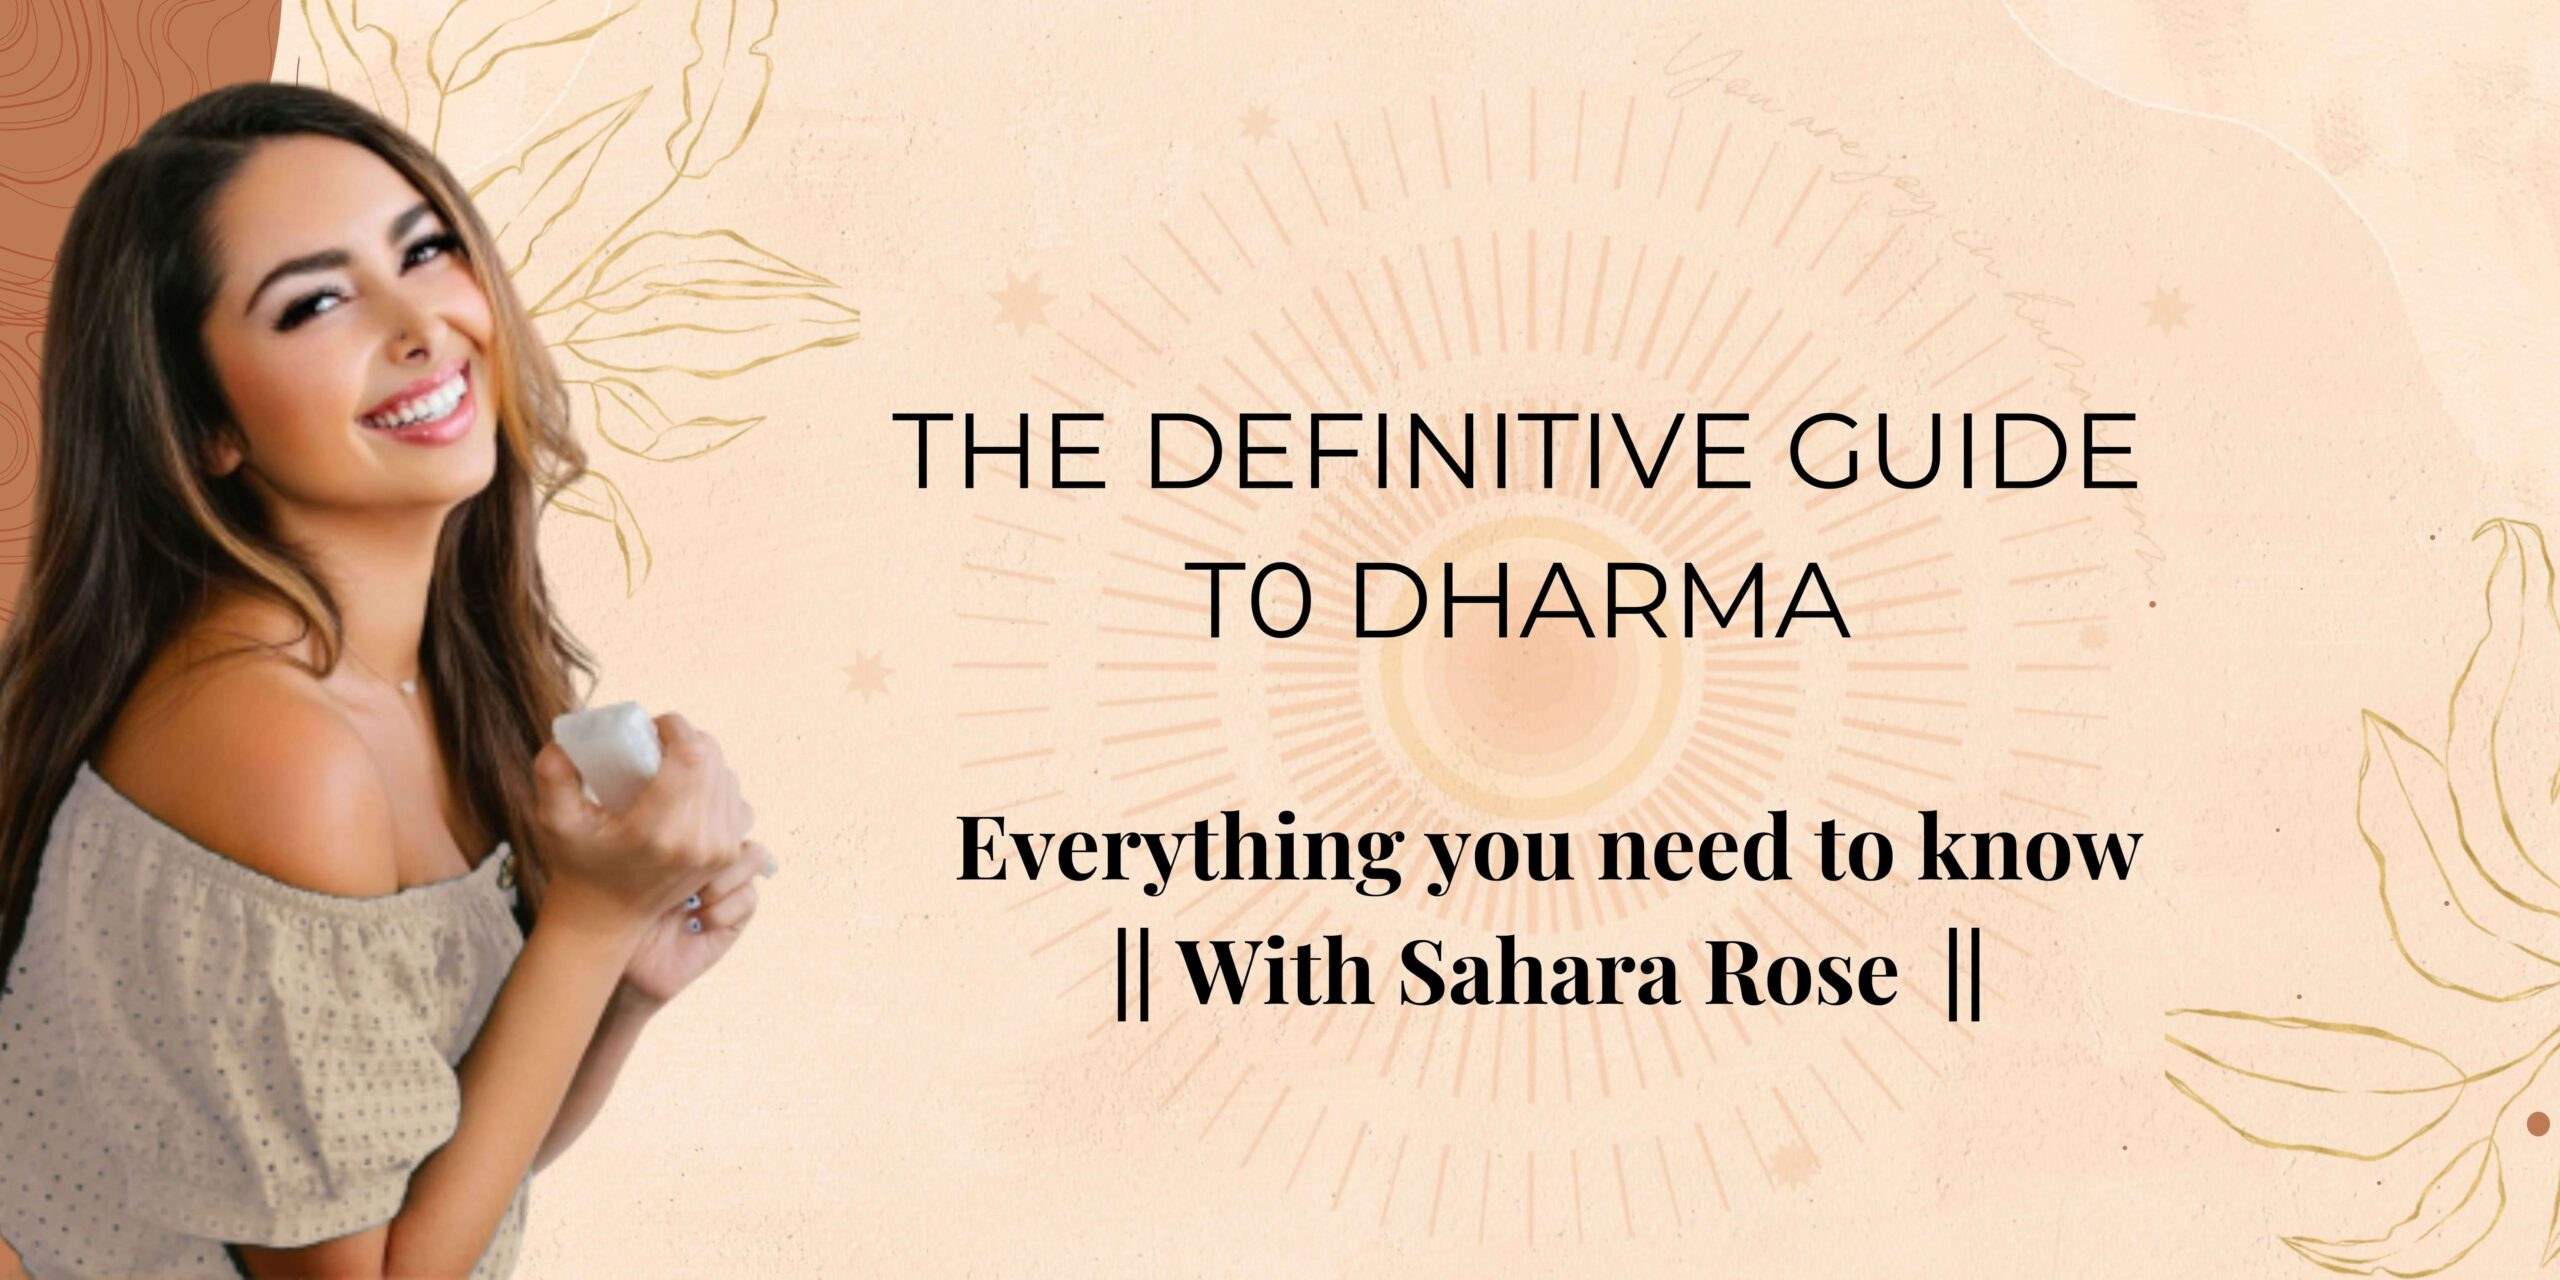 The Definitive Guide To Dharma